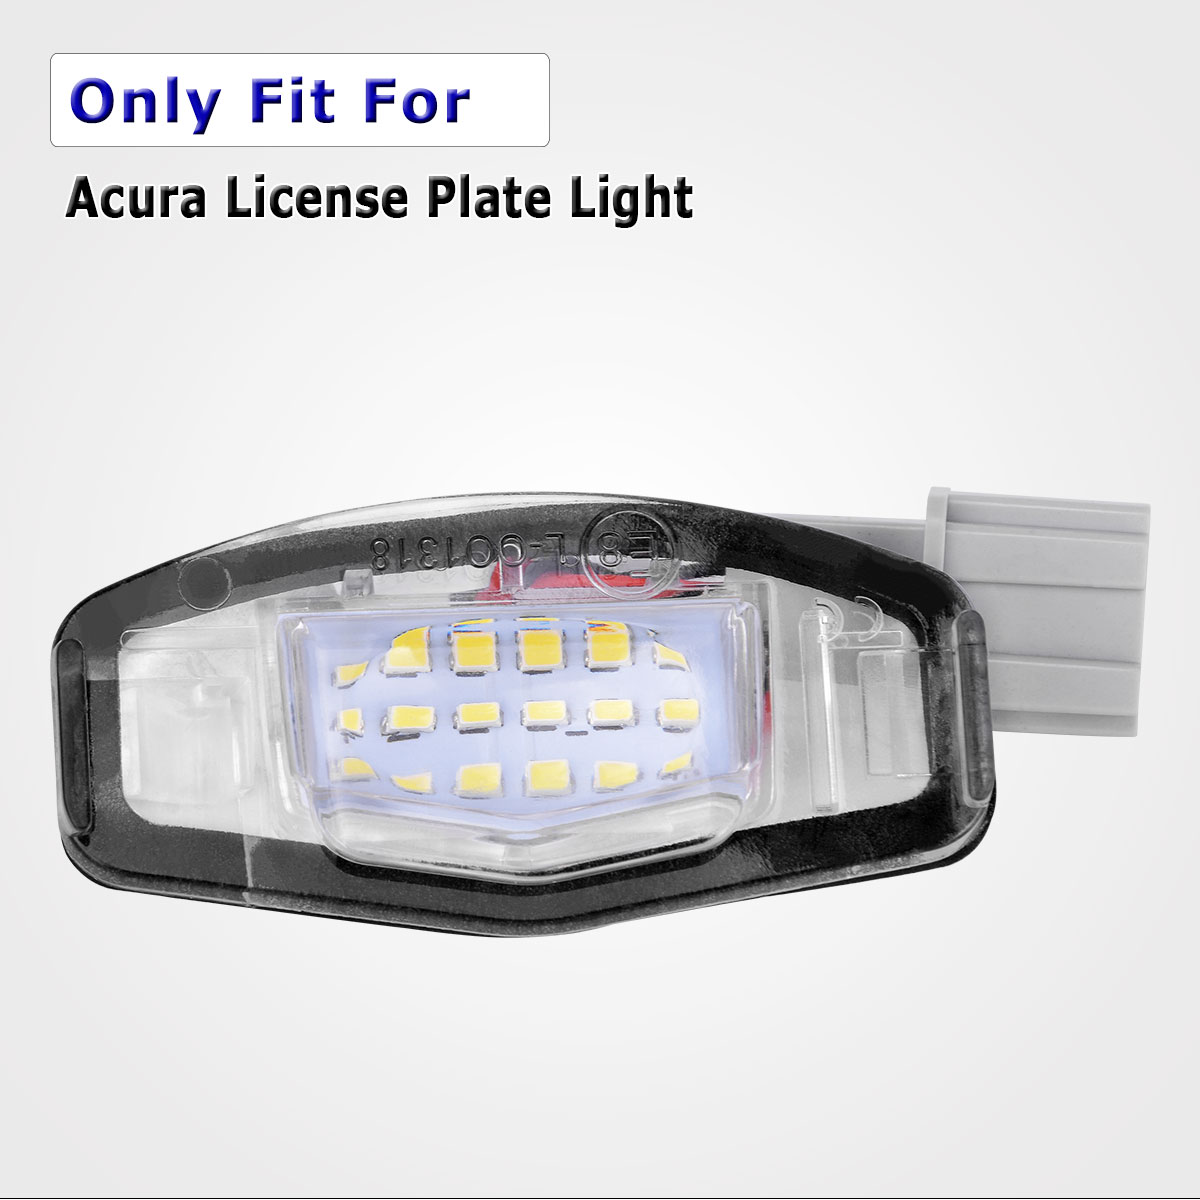 2x For Acura TL TSX RDX Honda Civic Accord LED License